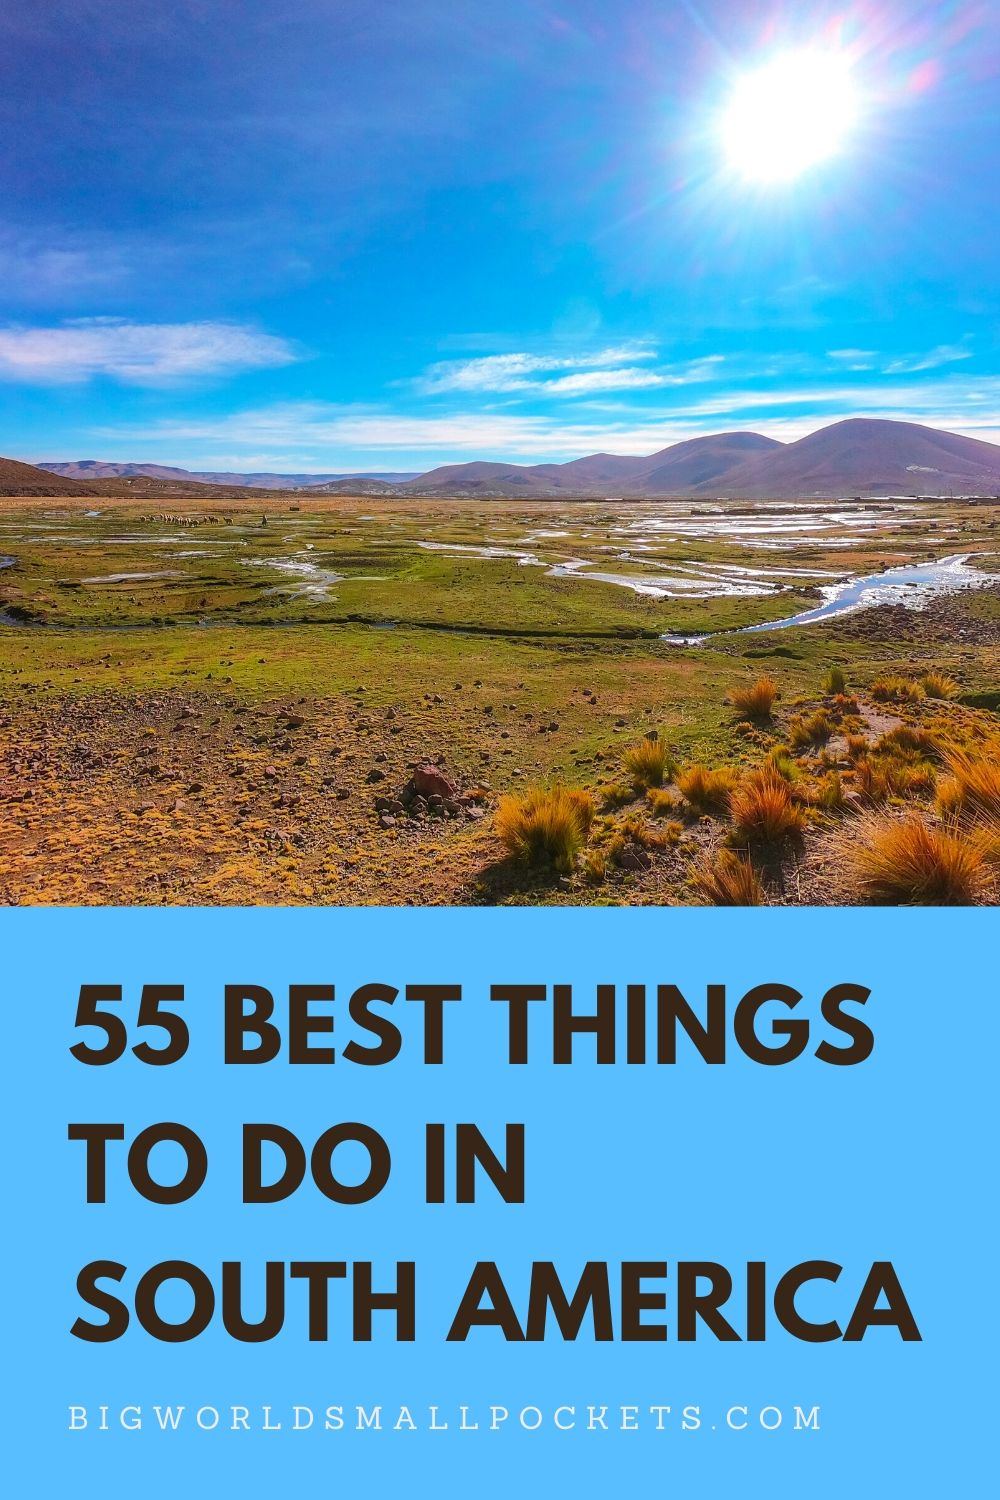 Ultimate List of the 55 Top Things To Do in South America